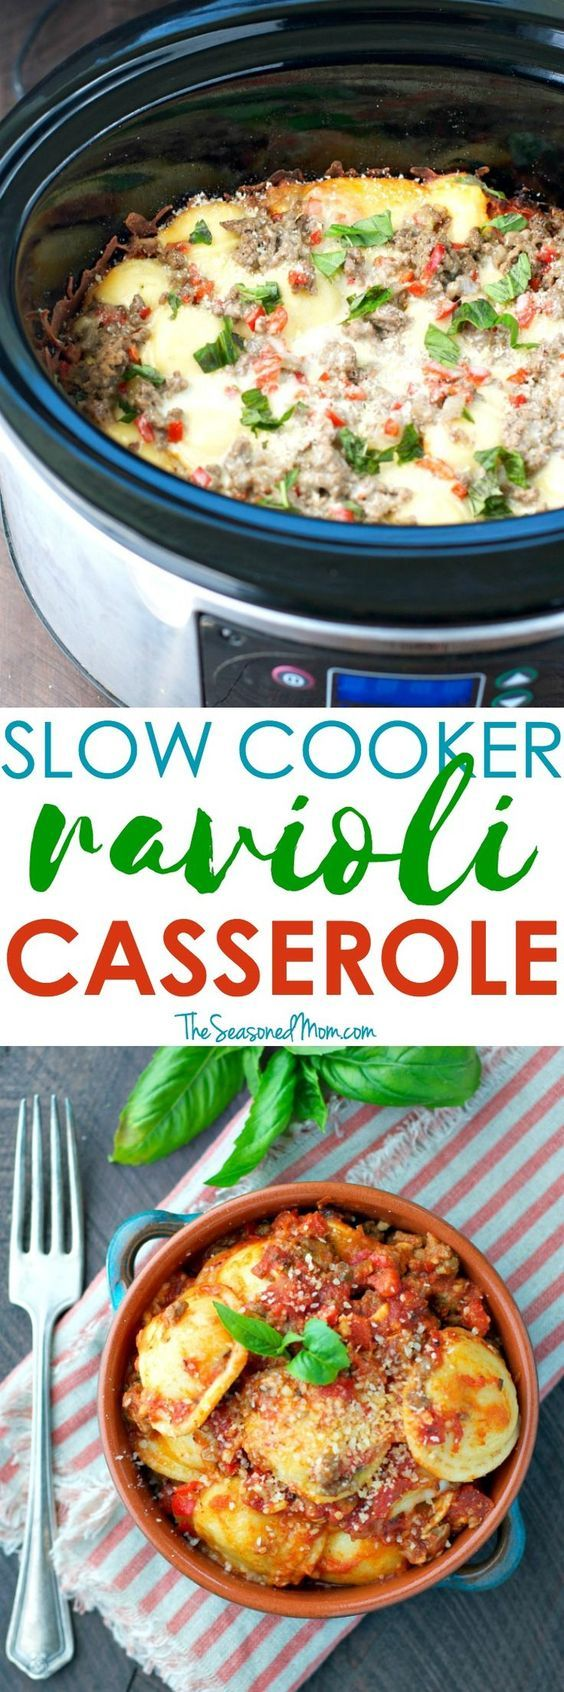 Easy Slow Cooker Recipes like this Ravioli Casserole are a busy mom's best friend! Prep the ingredients ahead of time and a cozy, family-friendly dinner will be ready and waiting for you at the end of the day! #MoreHonestFood #HorizonOrganic #ad @horizono